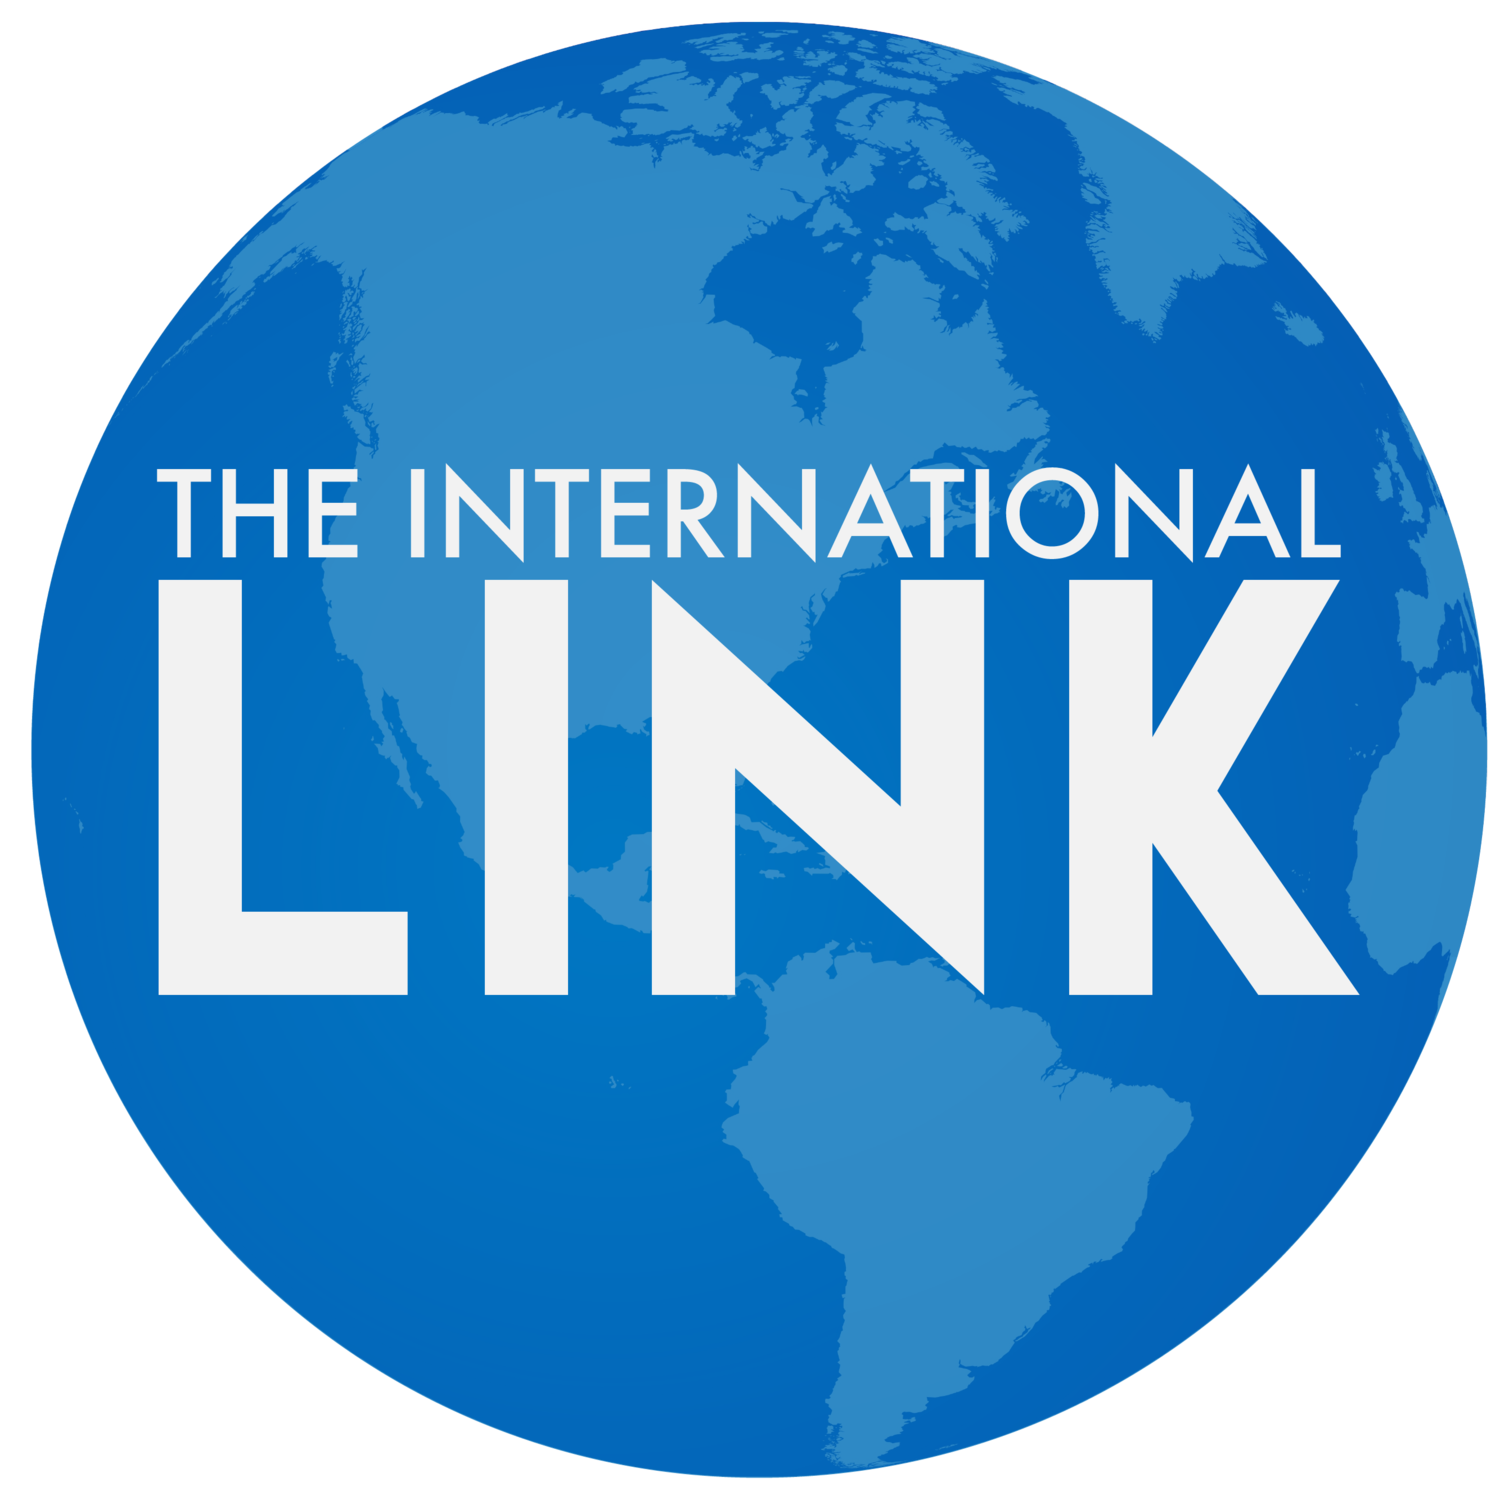 The International Link